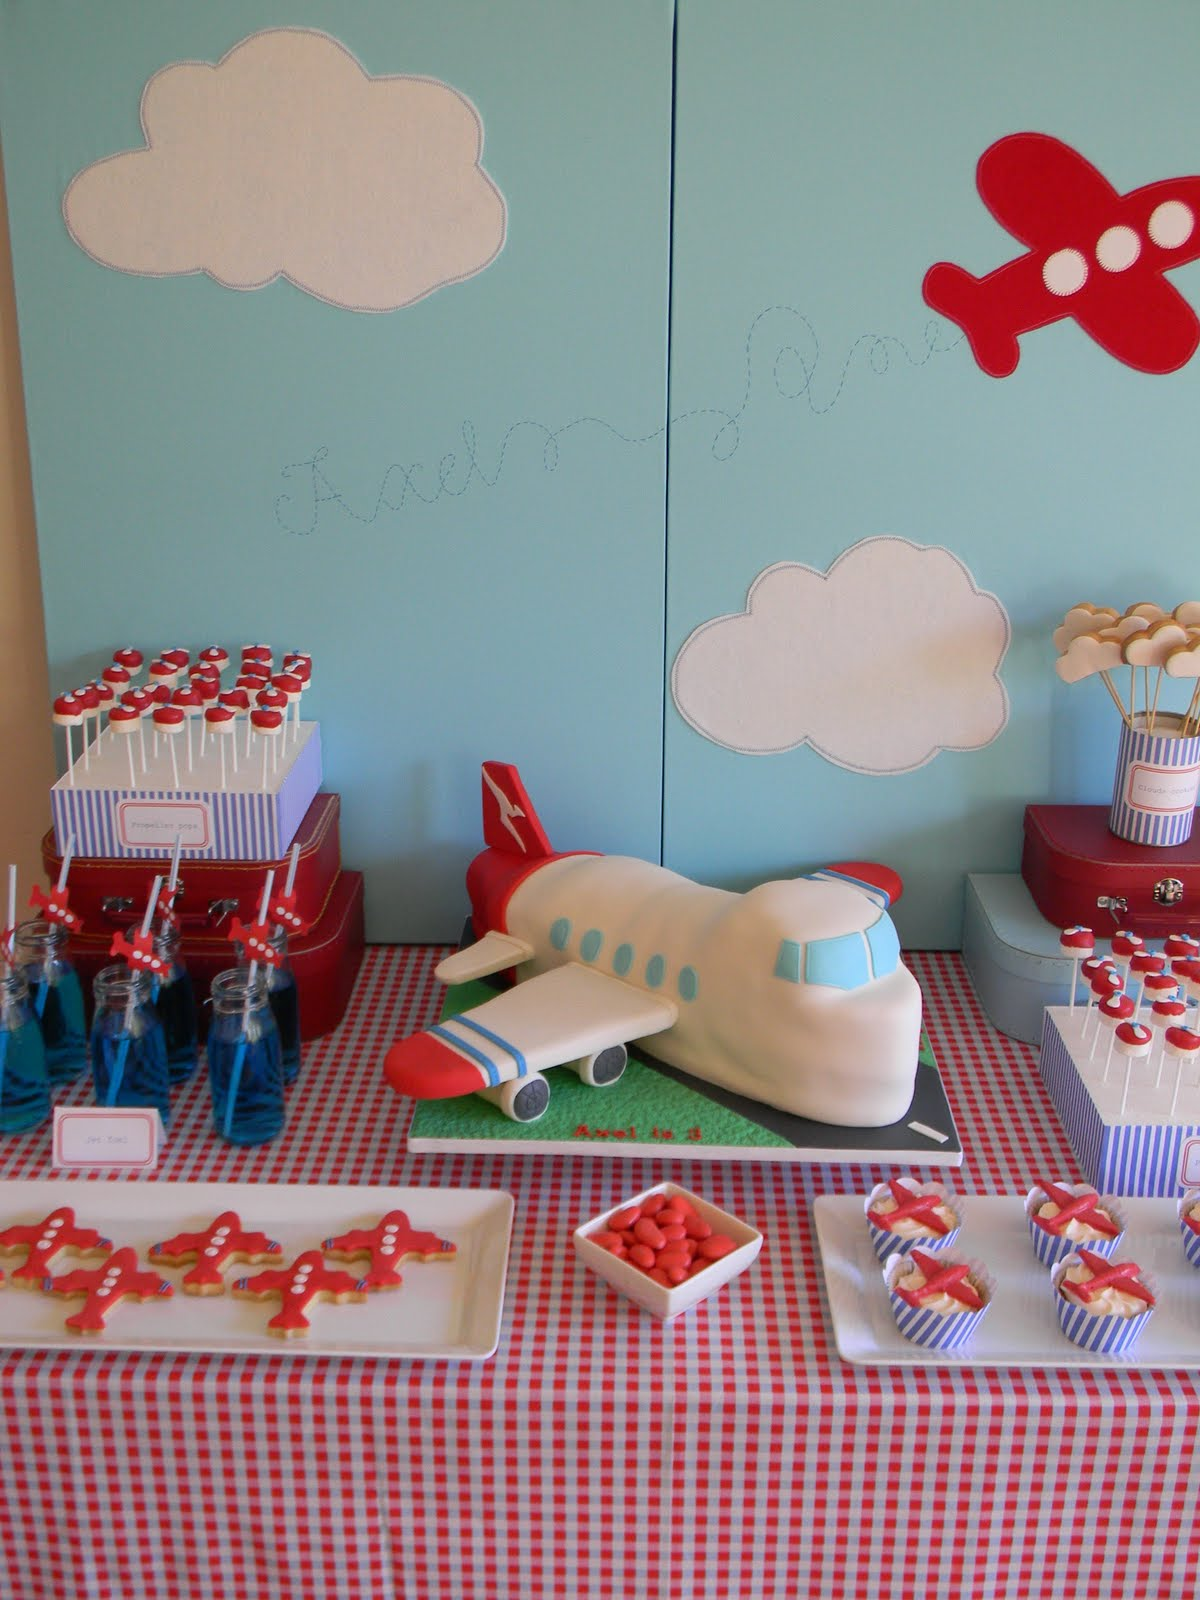 Just call me Martha: Axels airplane birthday cake, cookies & pops